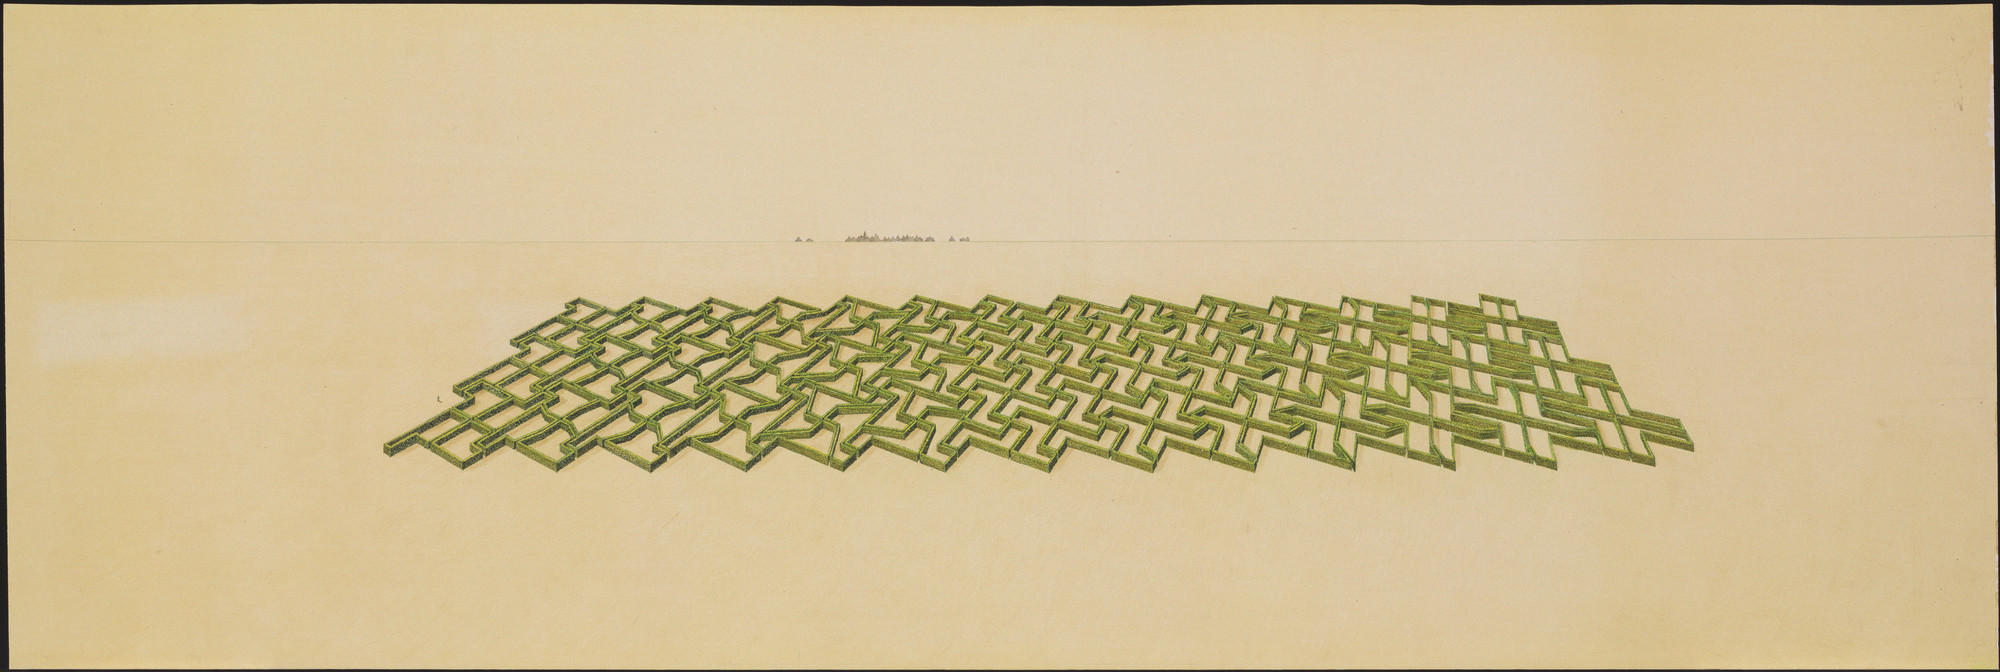 Emilio Ambasz. Pro Memoria Garden, project for a Labyrinth, Lüdenhausen, Germany, Aerial perspective. 1978